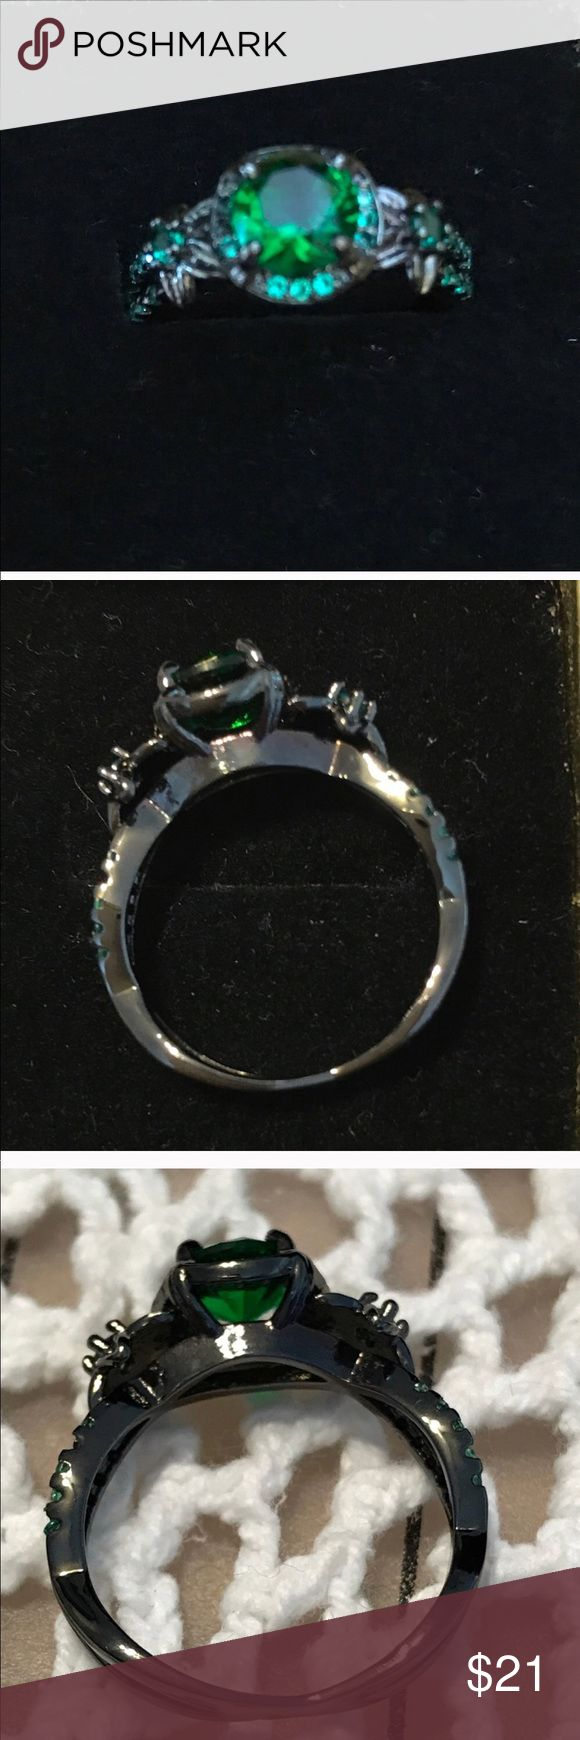 ~Green~ Emerald Green Size 7 Ring Beautiful faux emerald stones in a black gold filled setting. NWOT! 1 x 1 x .25 Inch  Thanks for ringing my closet! ✨💜Roni S/vmshk Jewelry Rings